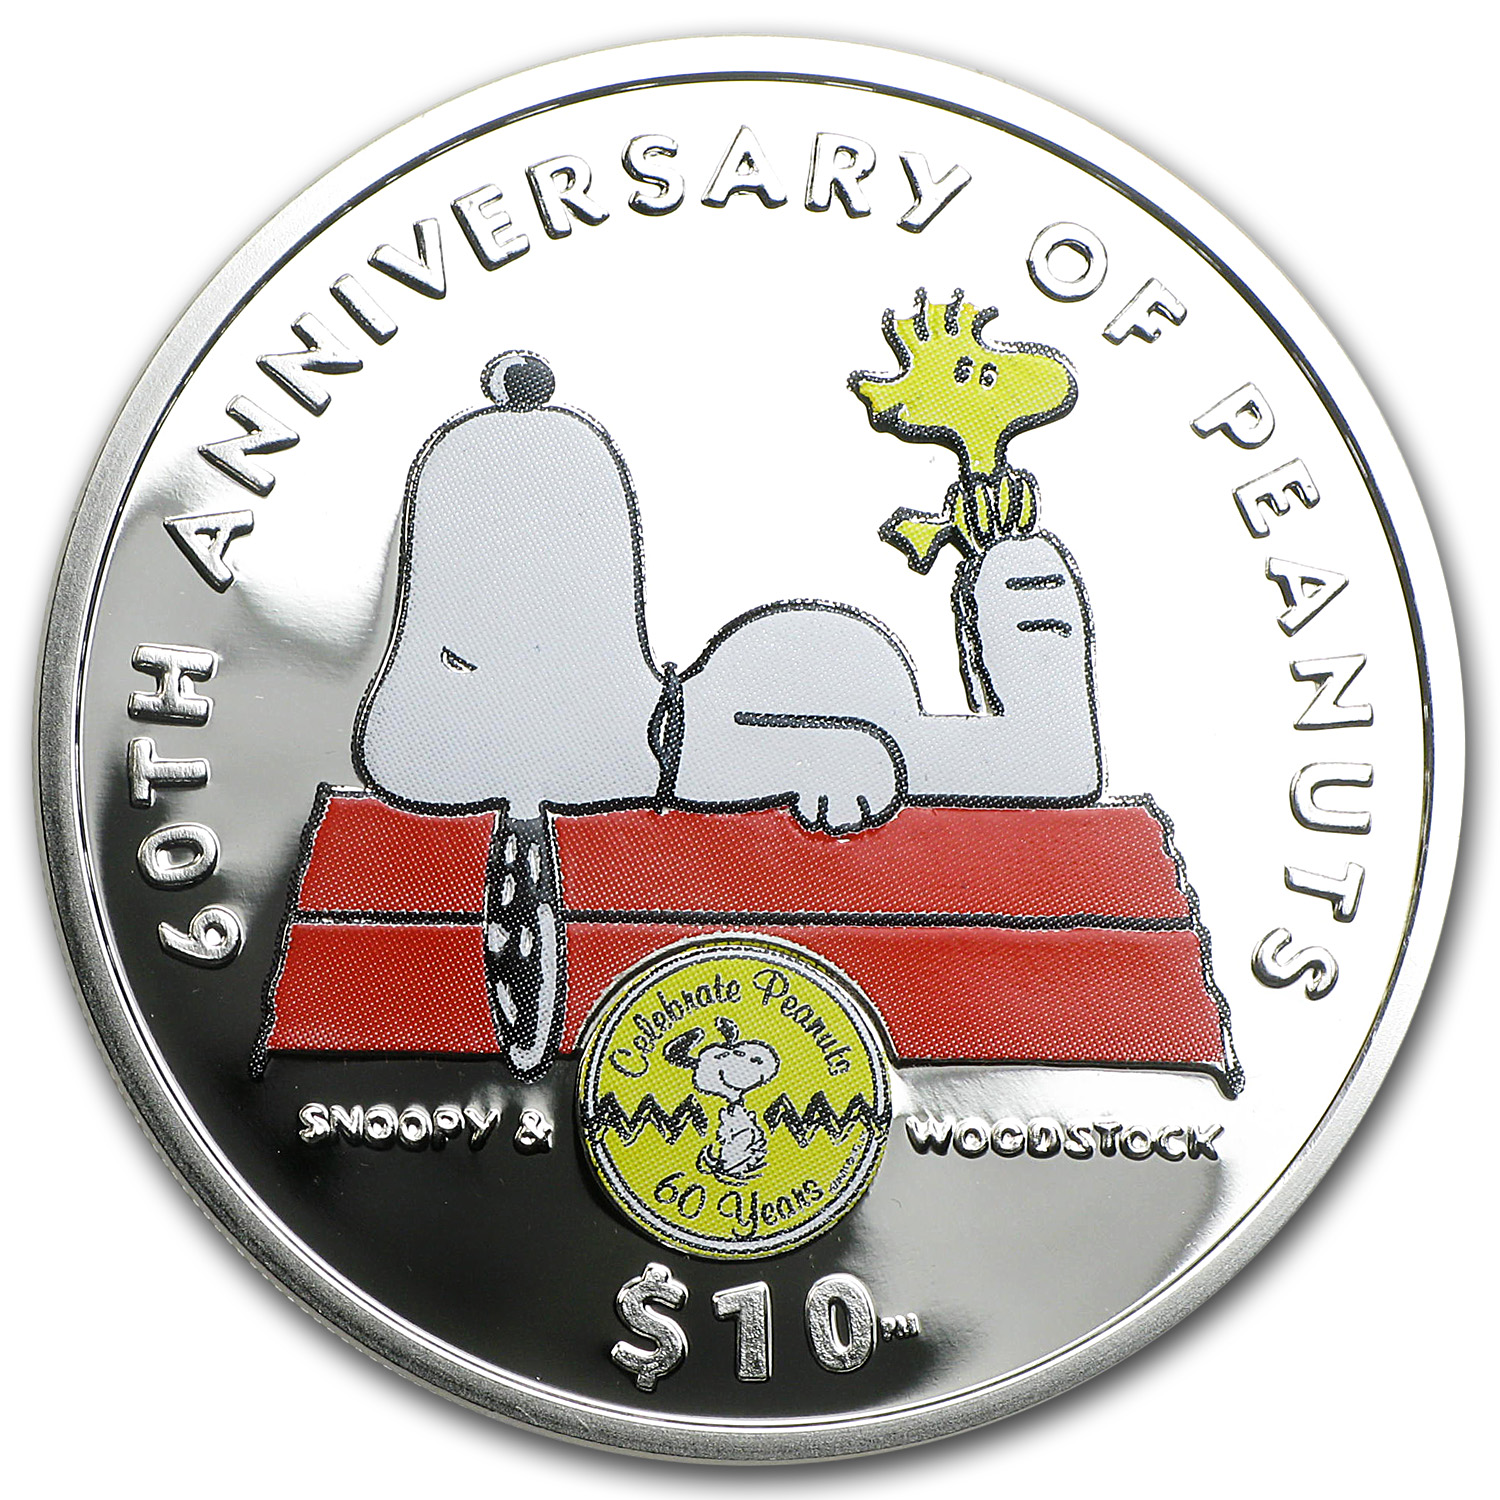 2010 British Virgin Islands Snoopy Proof (Colorized)